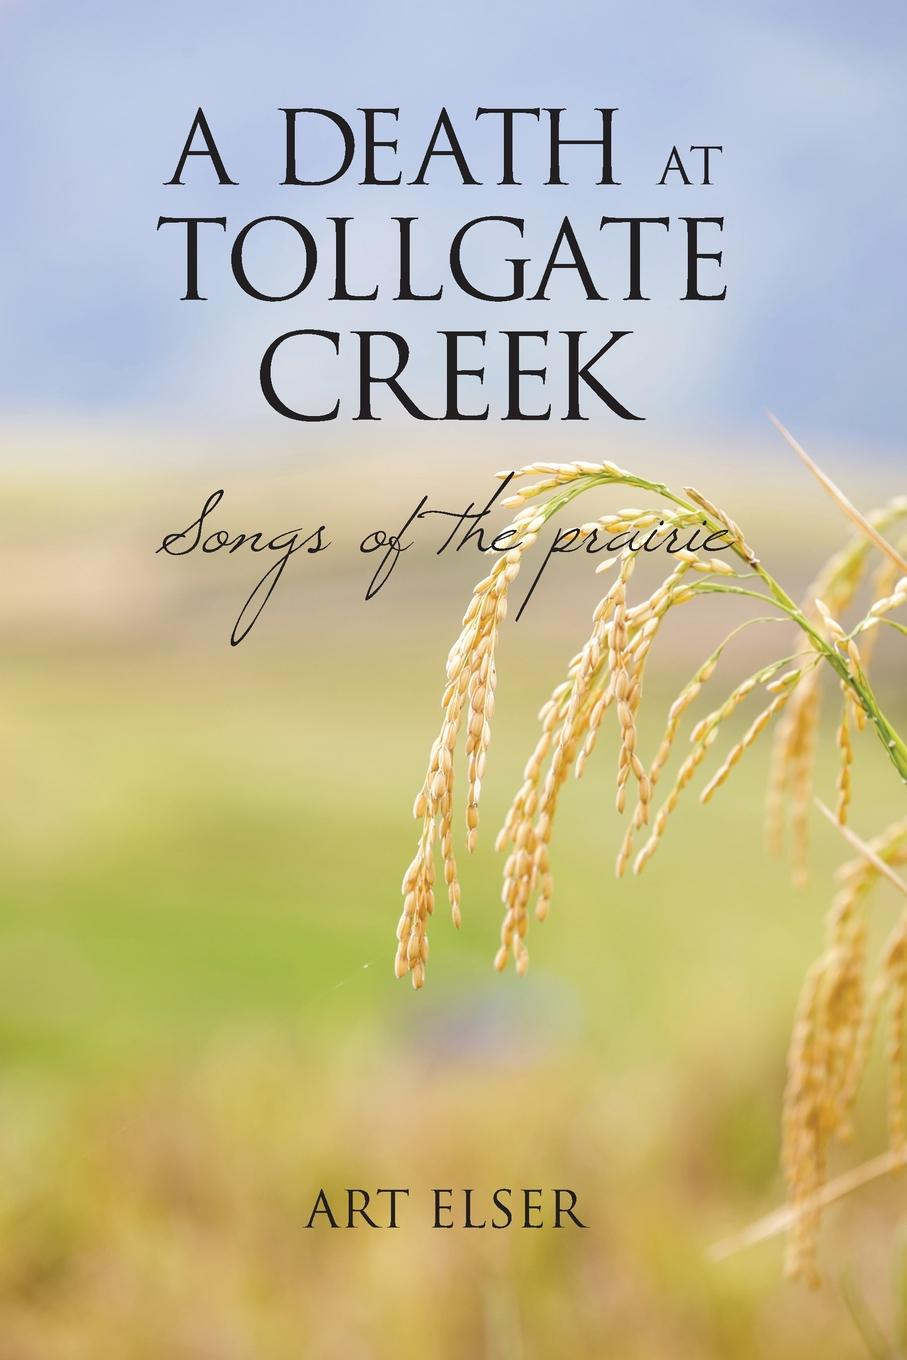 Art Elser A Death at Tollgate Creek. Songs of the prairie the conversations at curlow creek